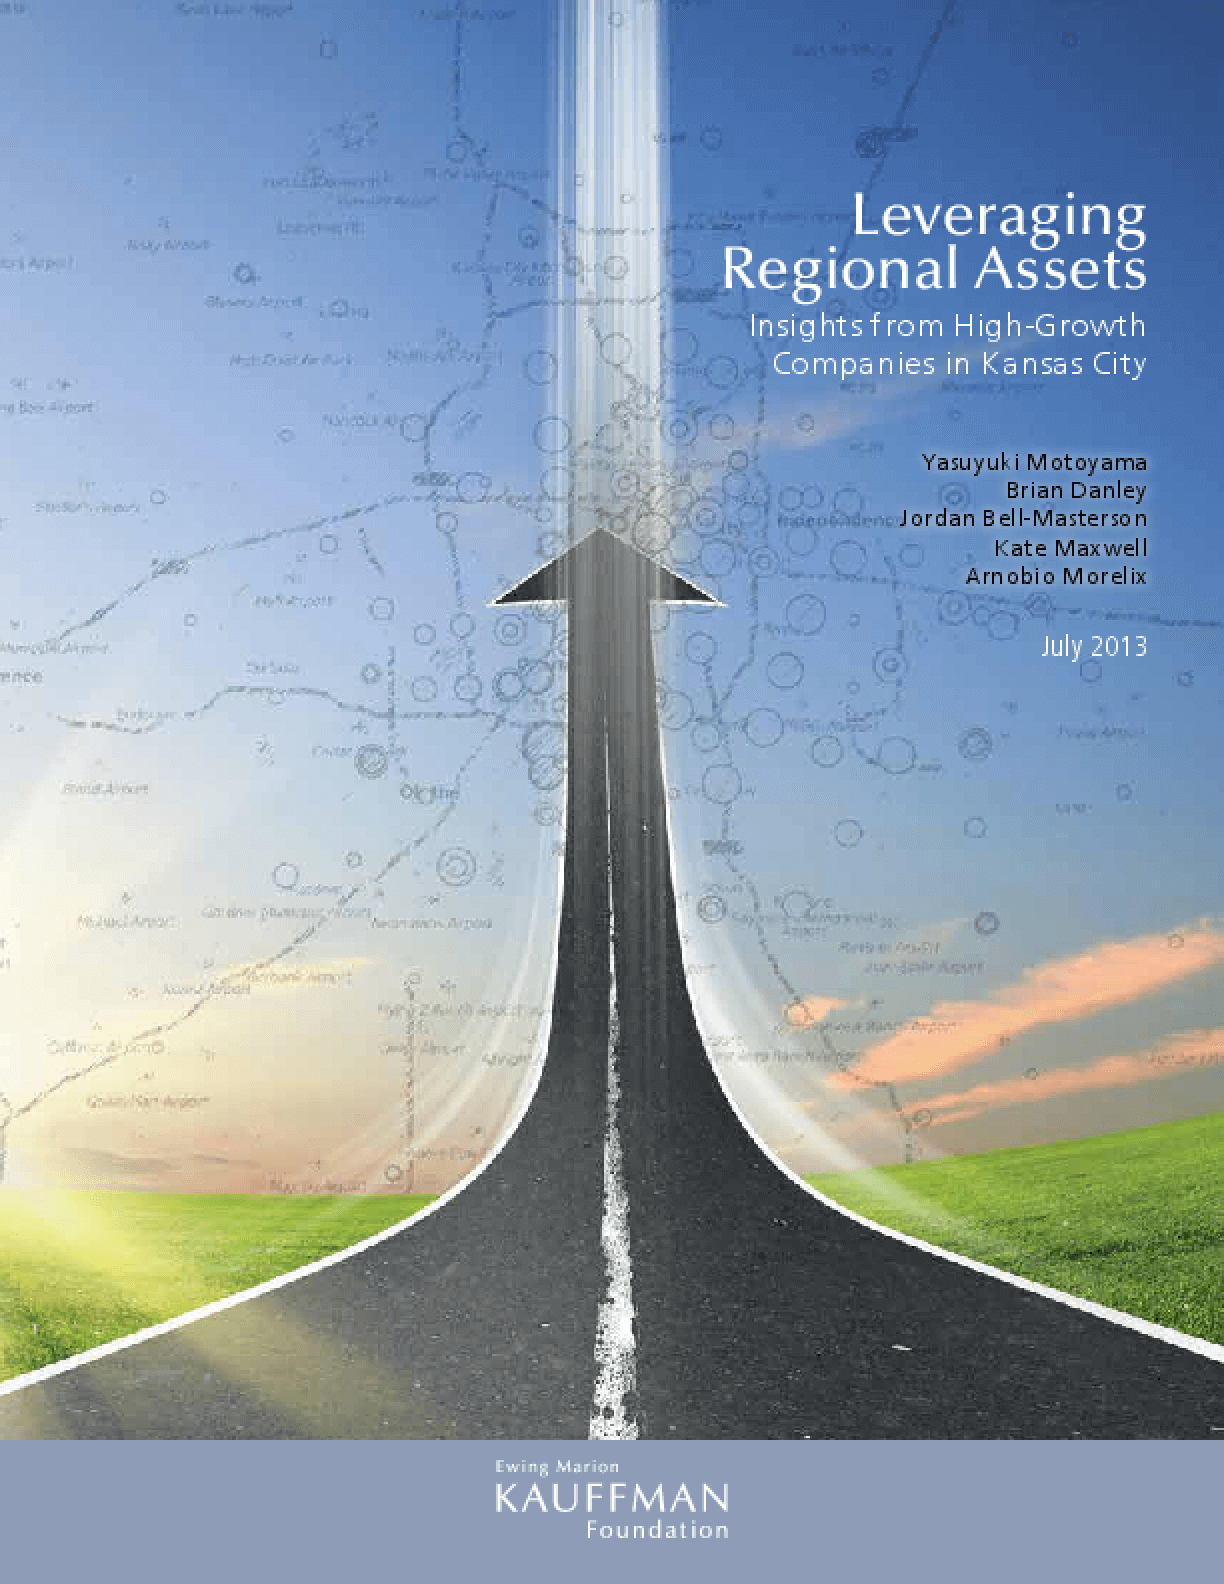 Leveraging Regional Assets: Insights from High-Growth Companies in Kansas City